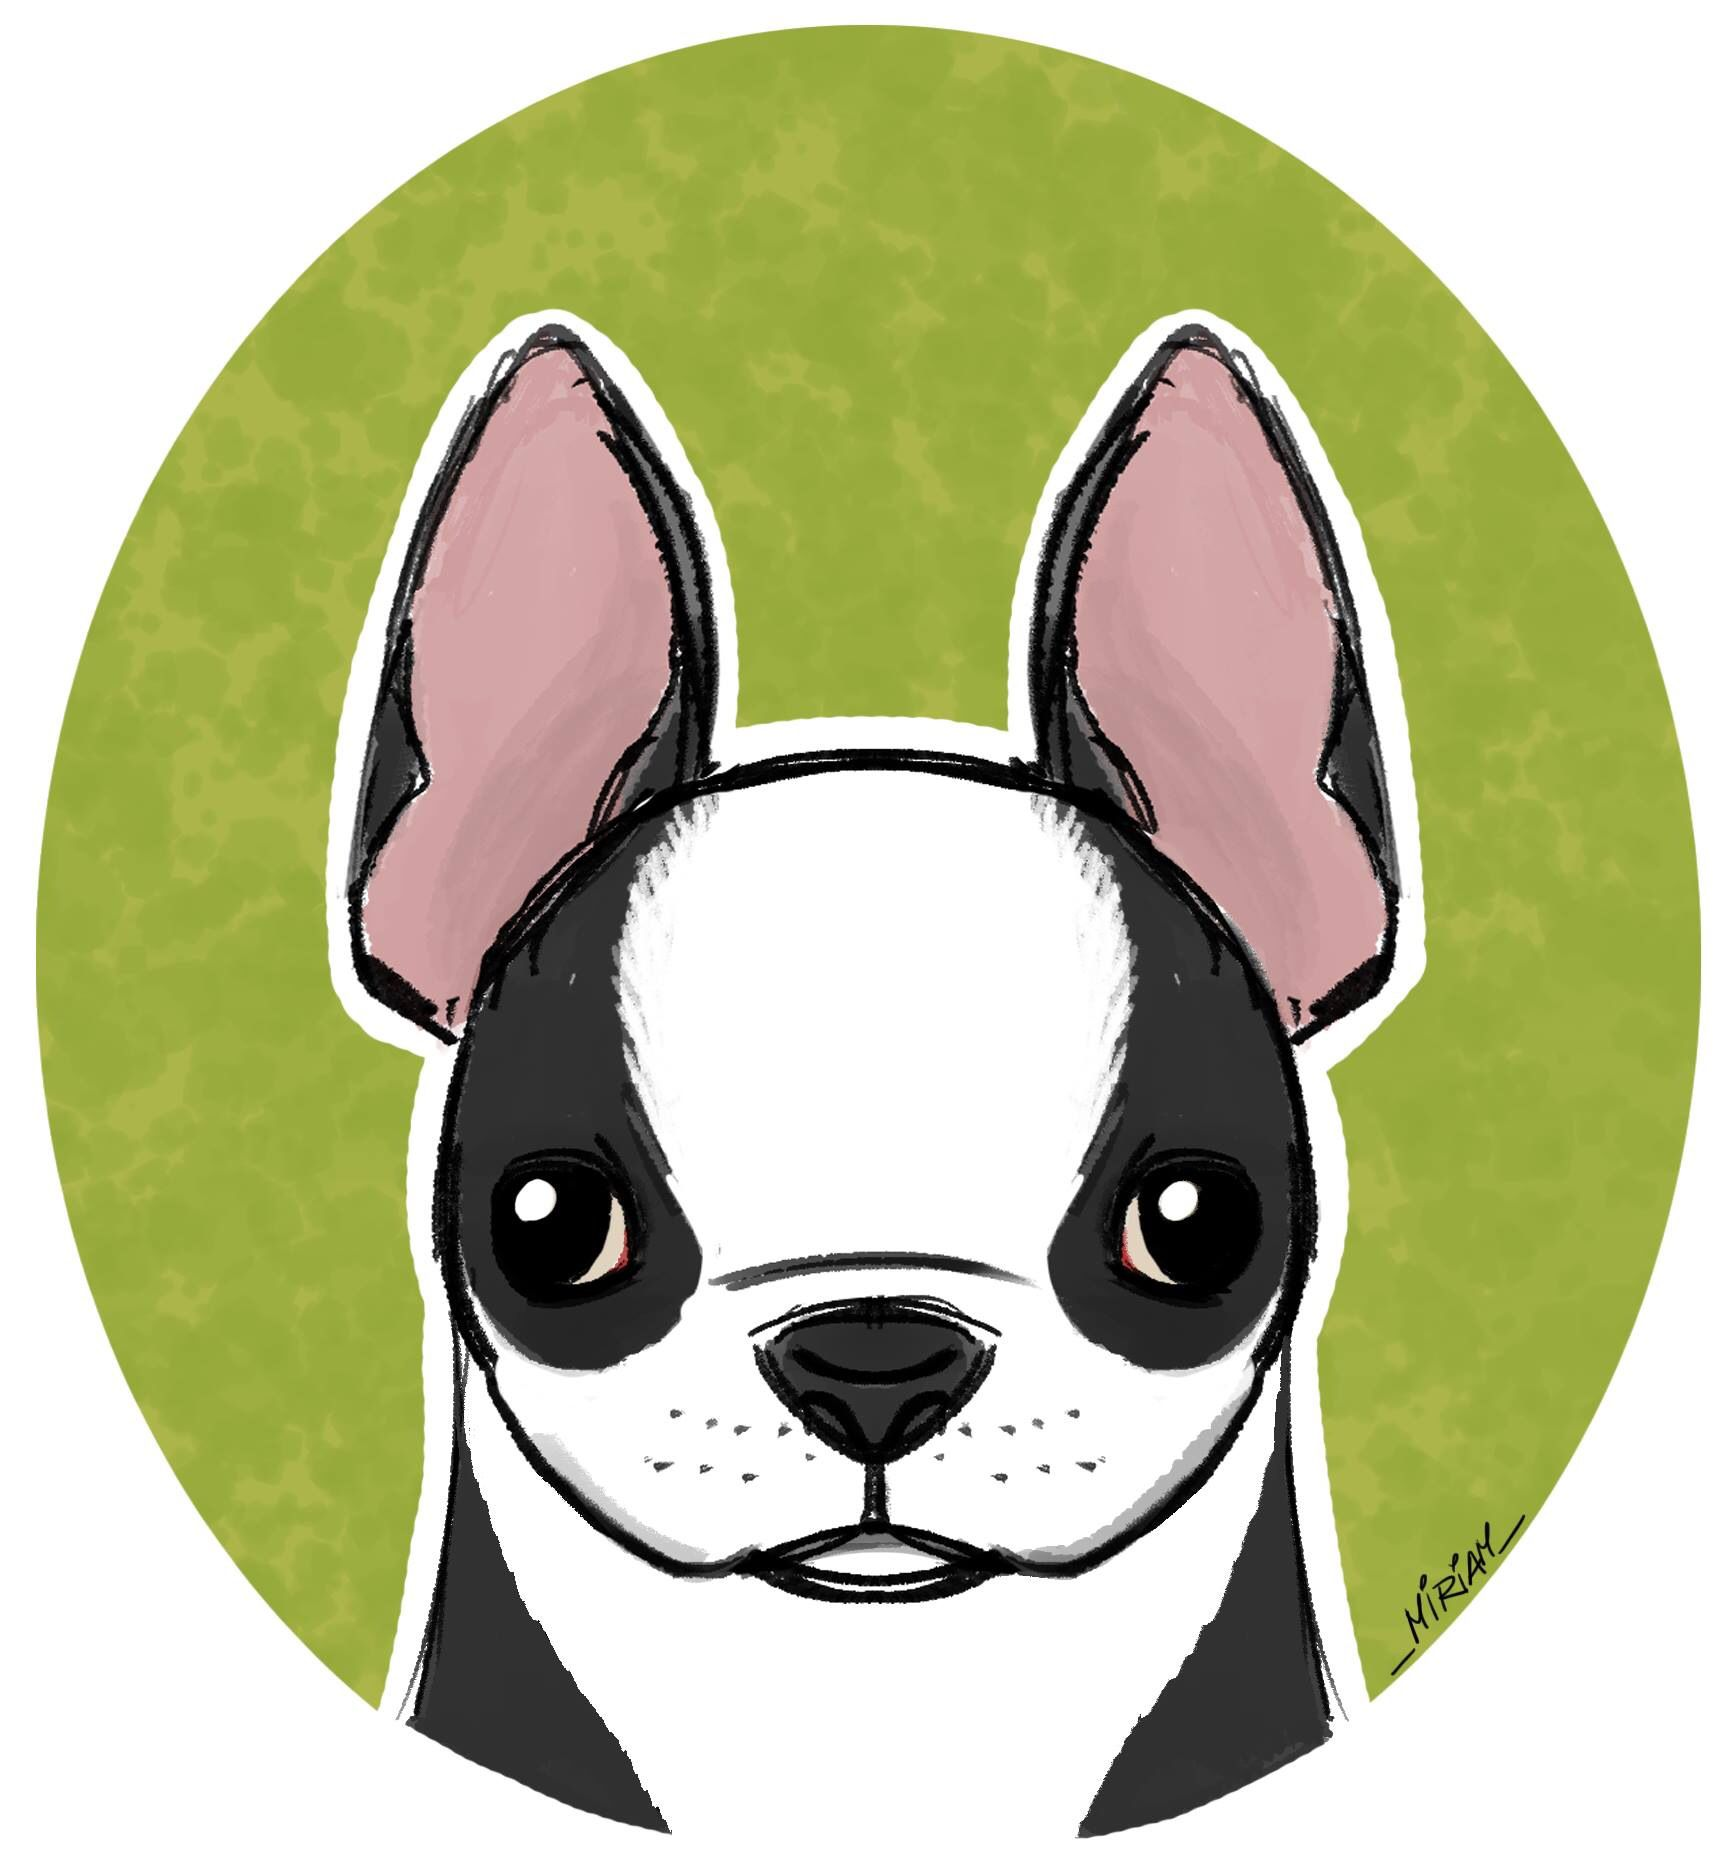 Felt Like Drawing My Hubby S Dog A Boston Terrier Drawing Sketch Bostonterrier Concept Art Characters Animal Illustration Character Design Inspiration